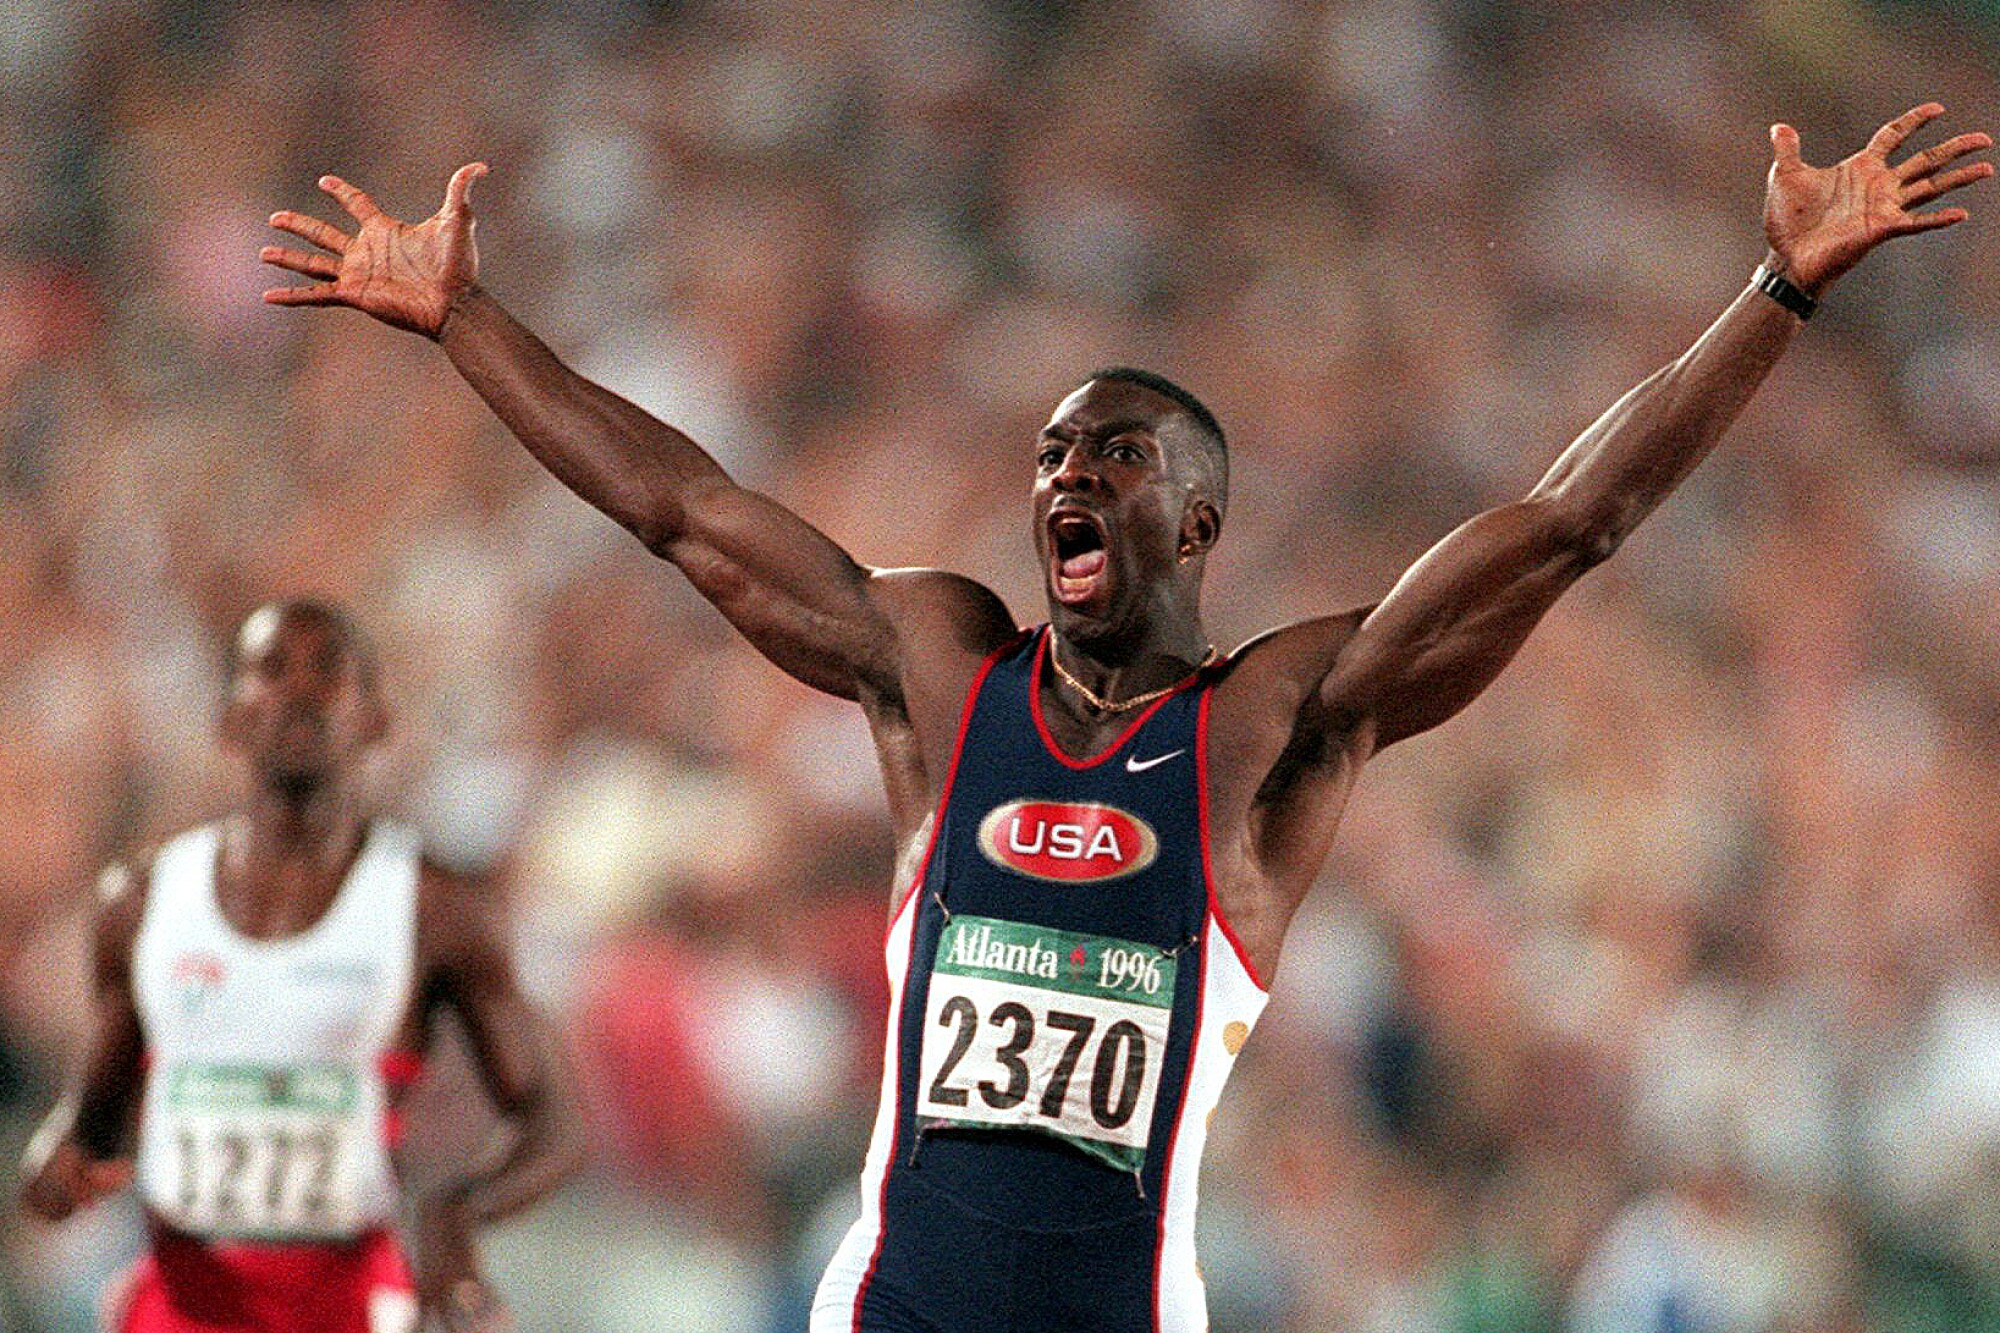 Michael Johnson celebrates after he won the men's 200 meter final in 1996.